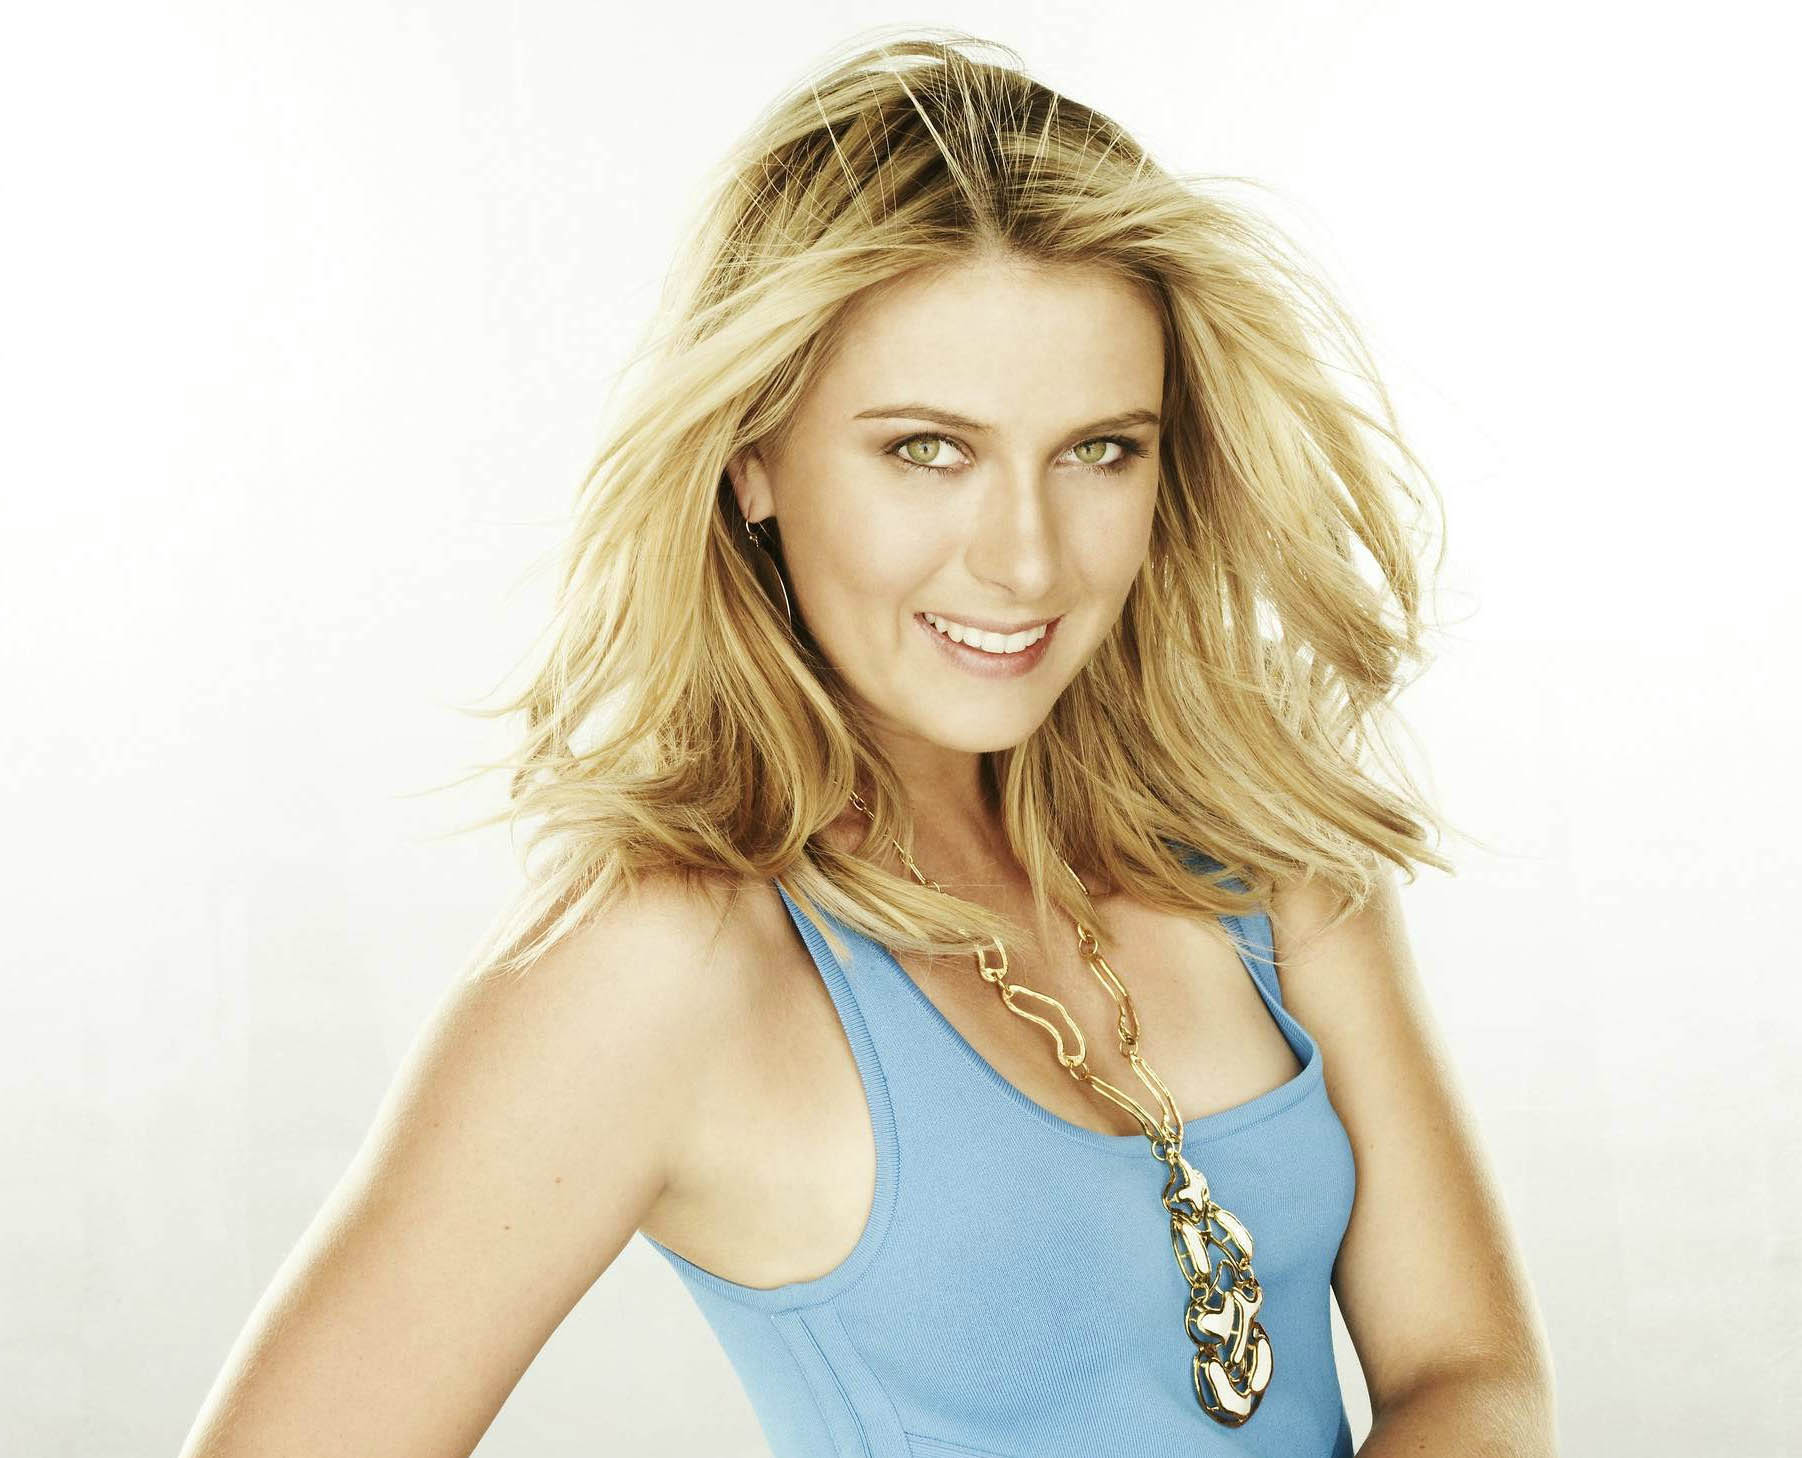 Maria Sharapova tennis player hd wallpaper